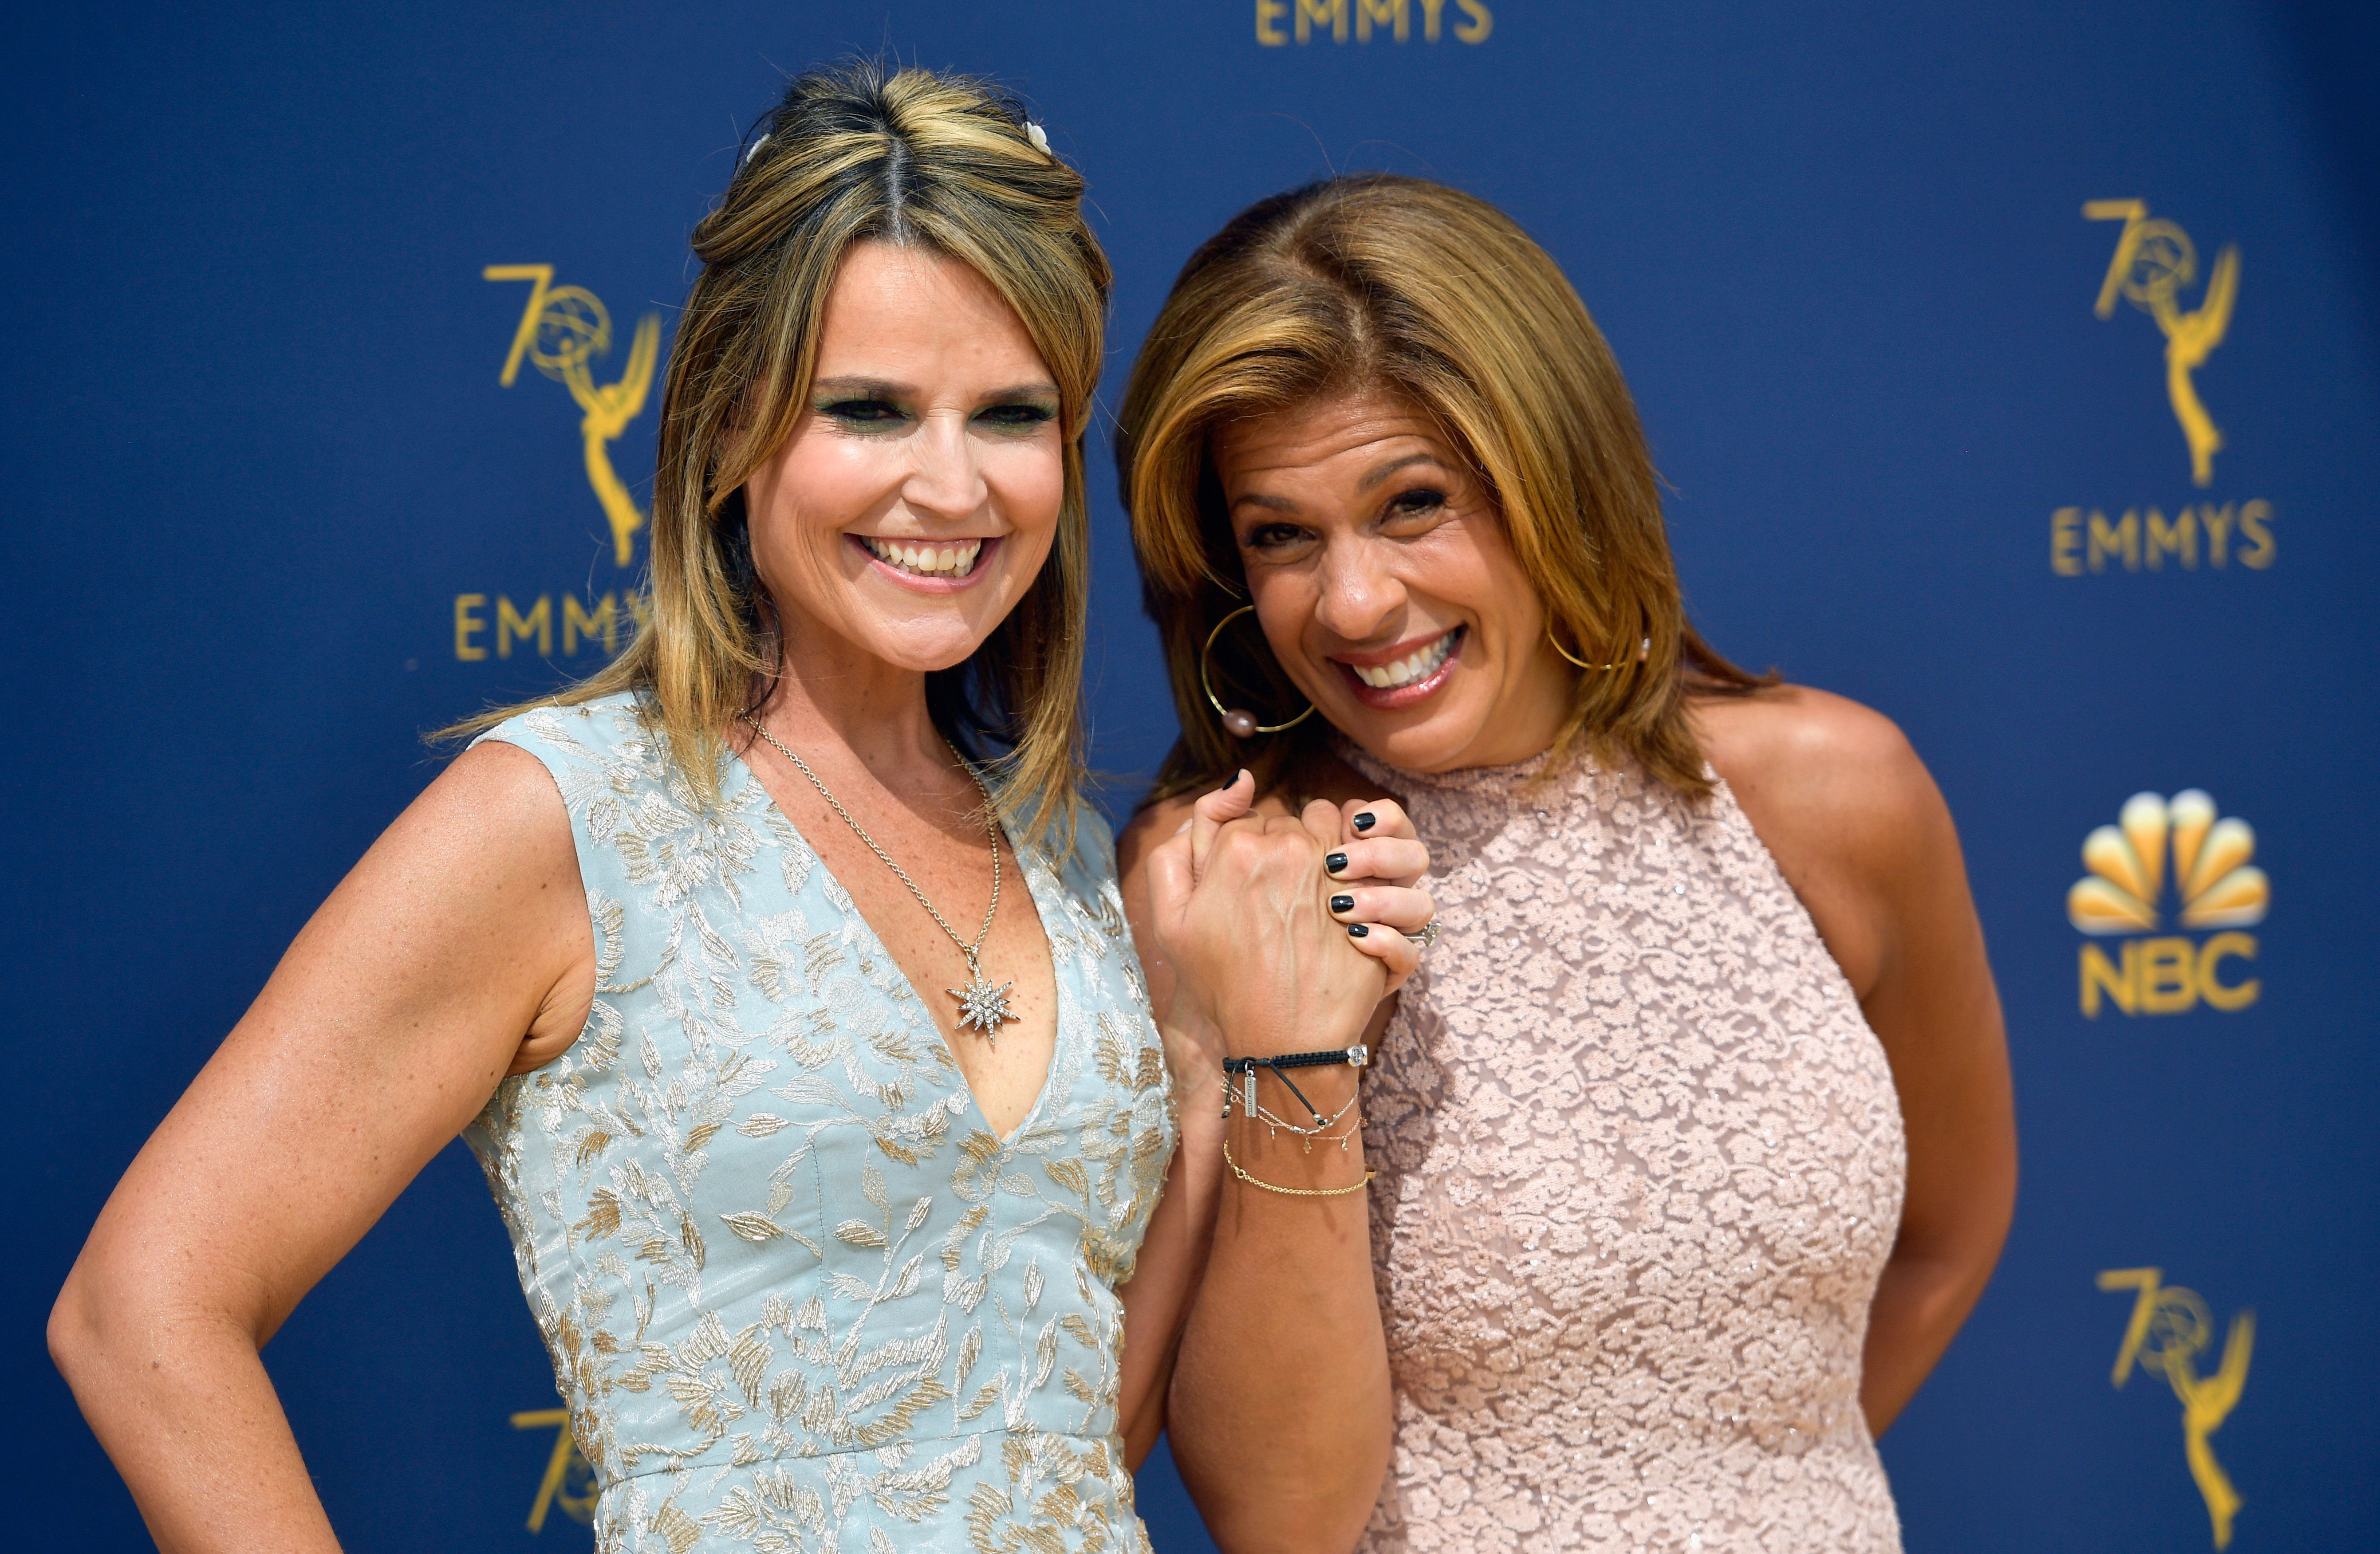 Savannah Guthrie and Hoda Kotb at the 70th Emmy Awards at Microsoft Theater on September 17, 2018   Photo: Getty Images